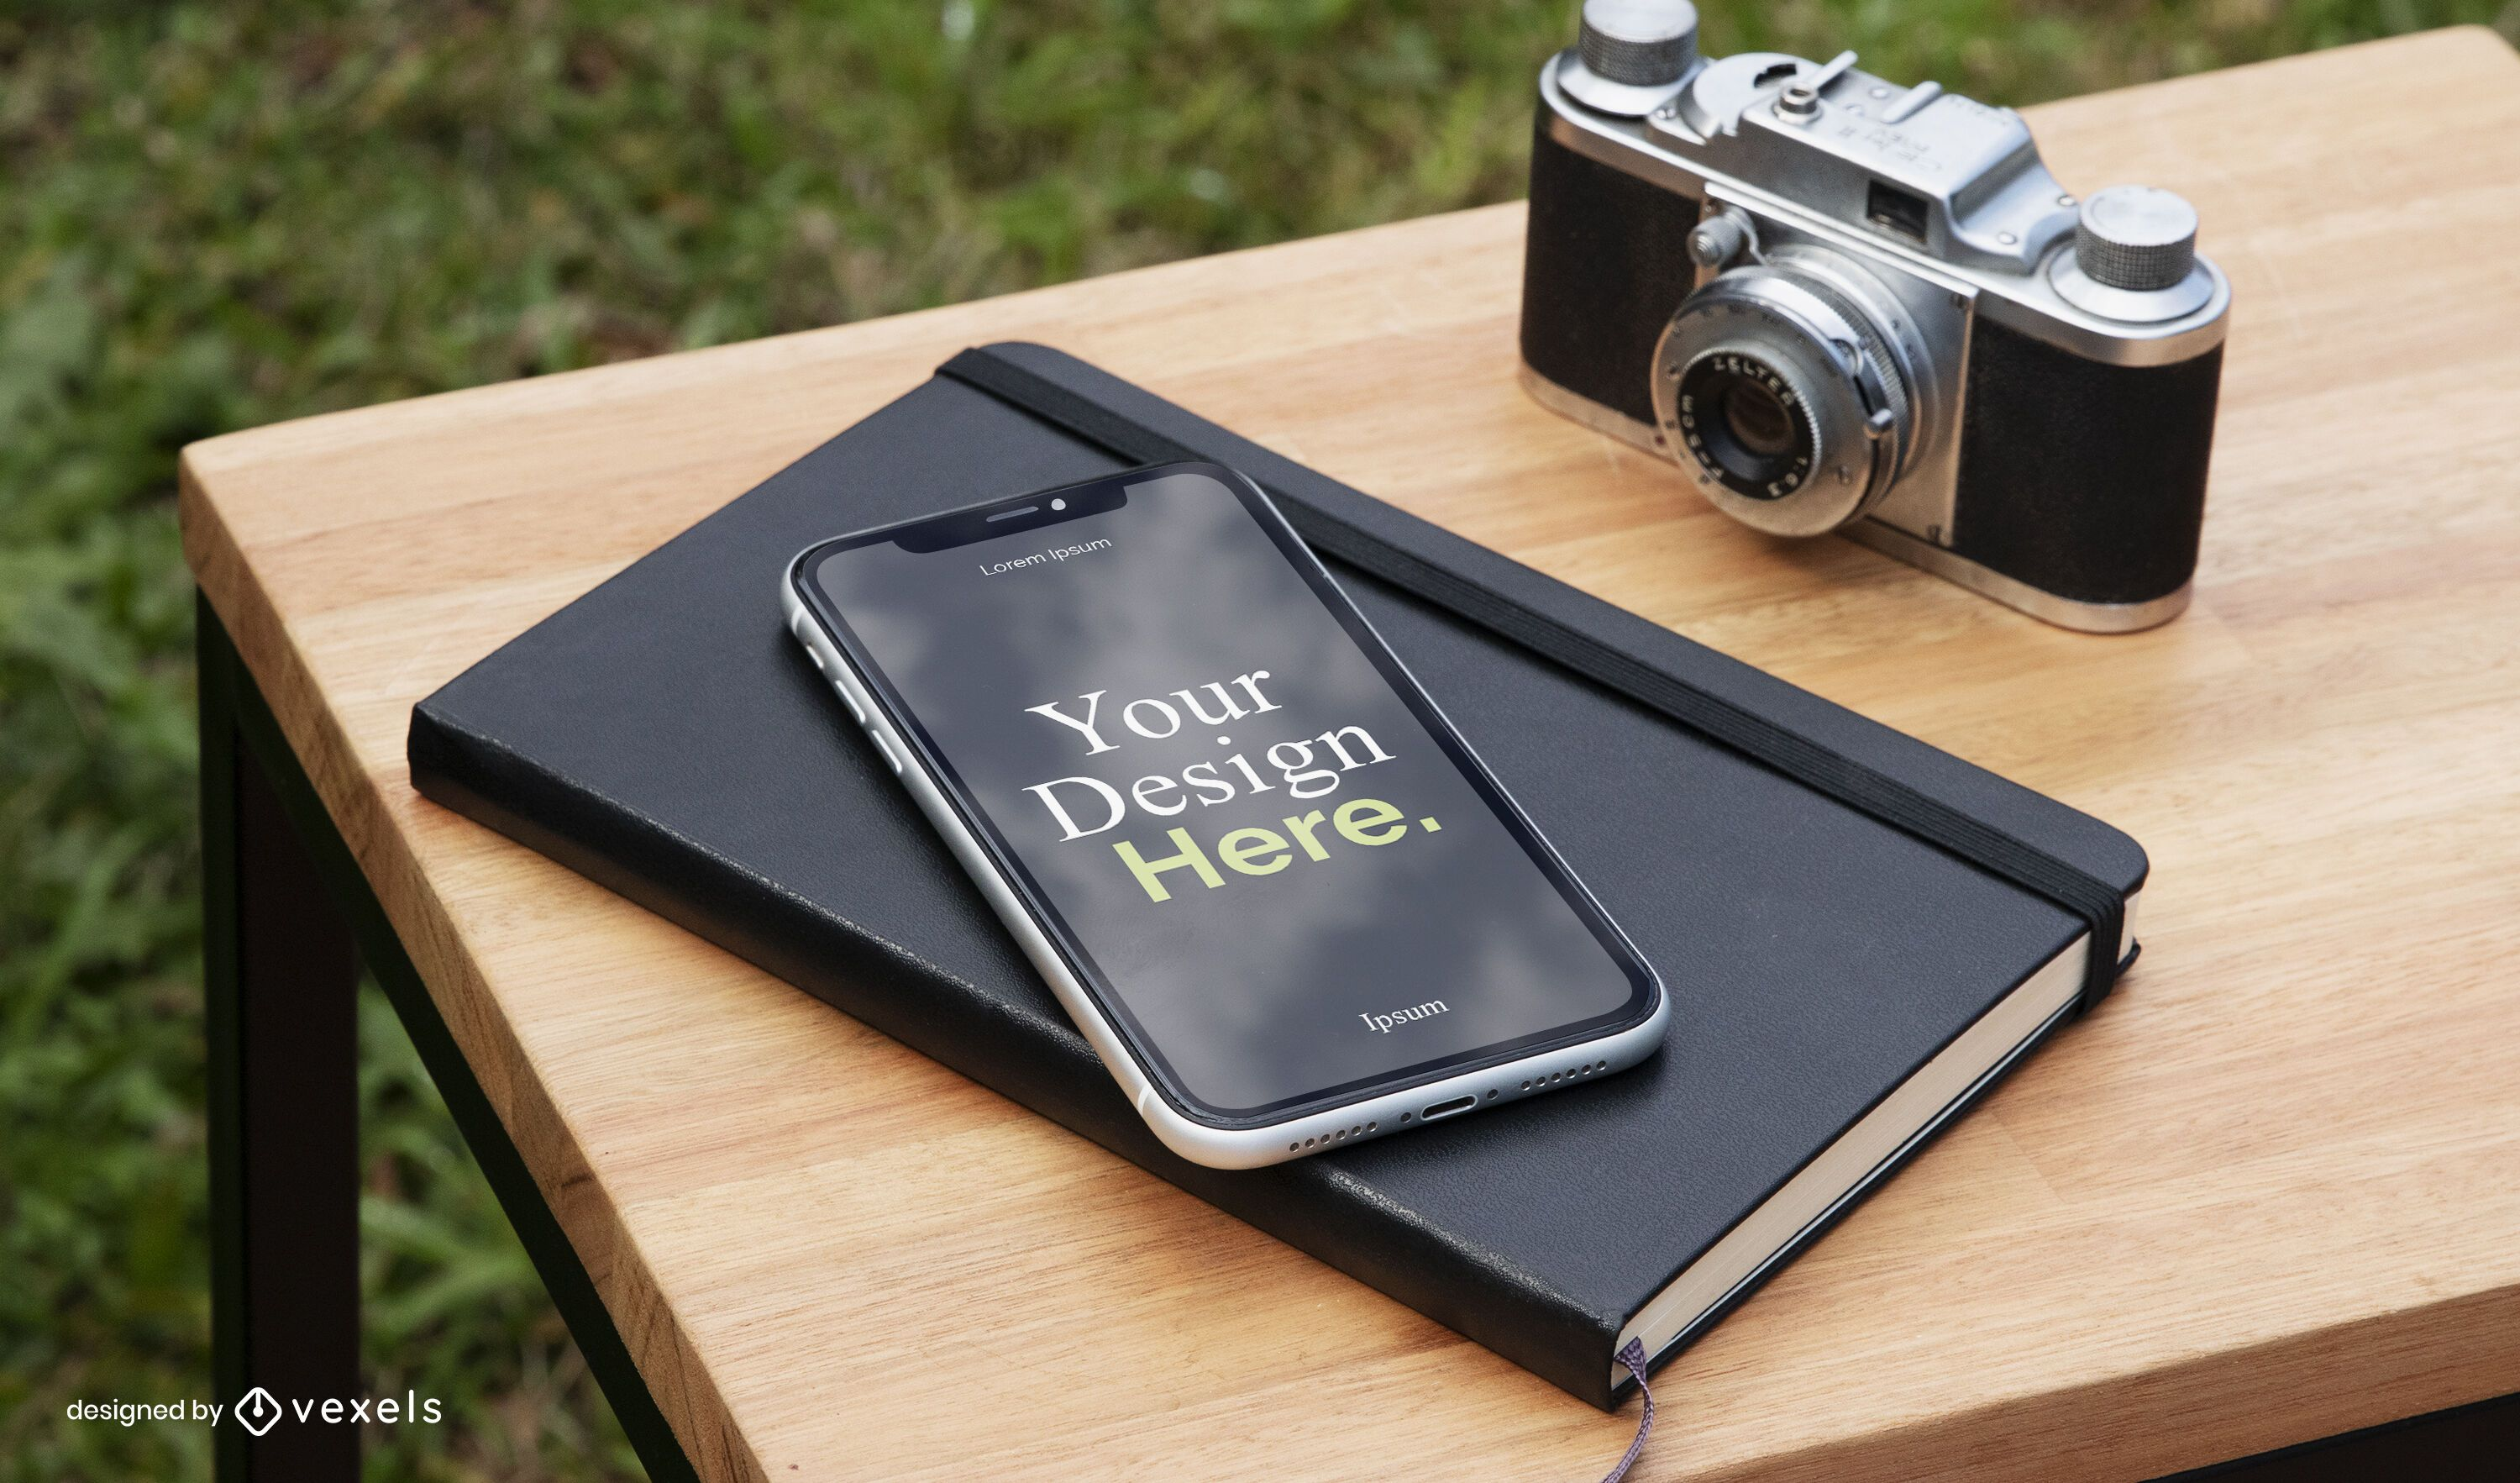 Iphone camera mockup composition